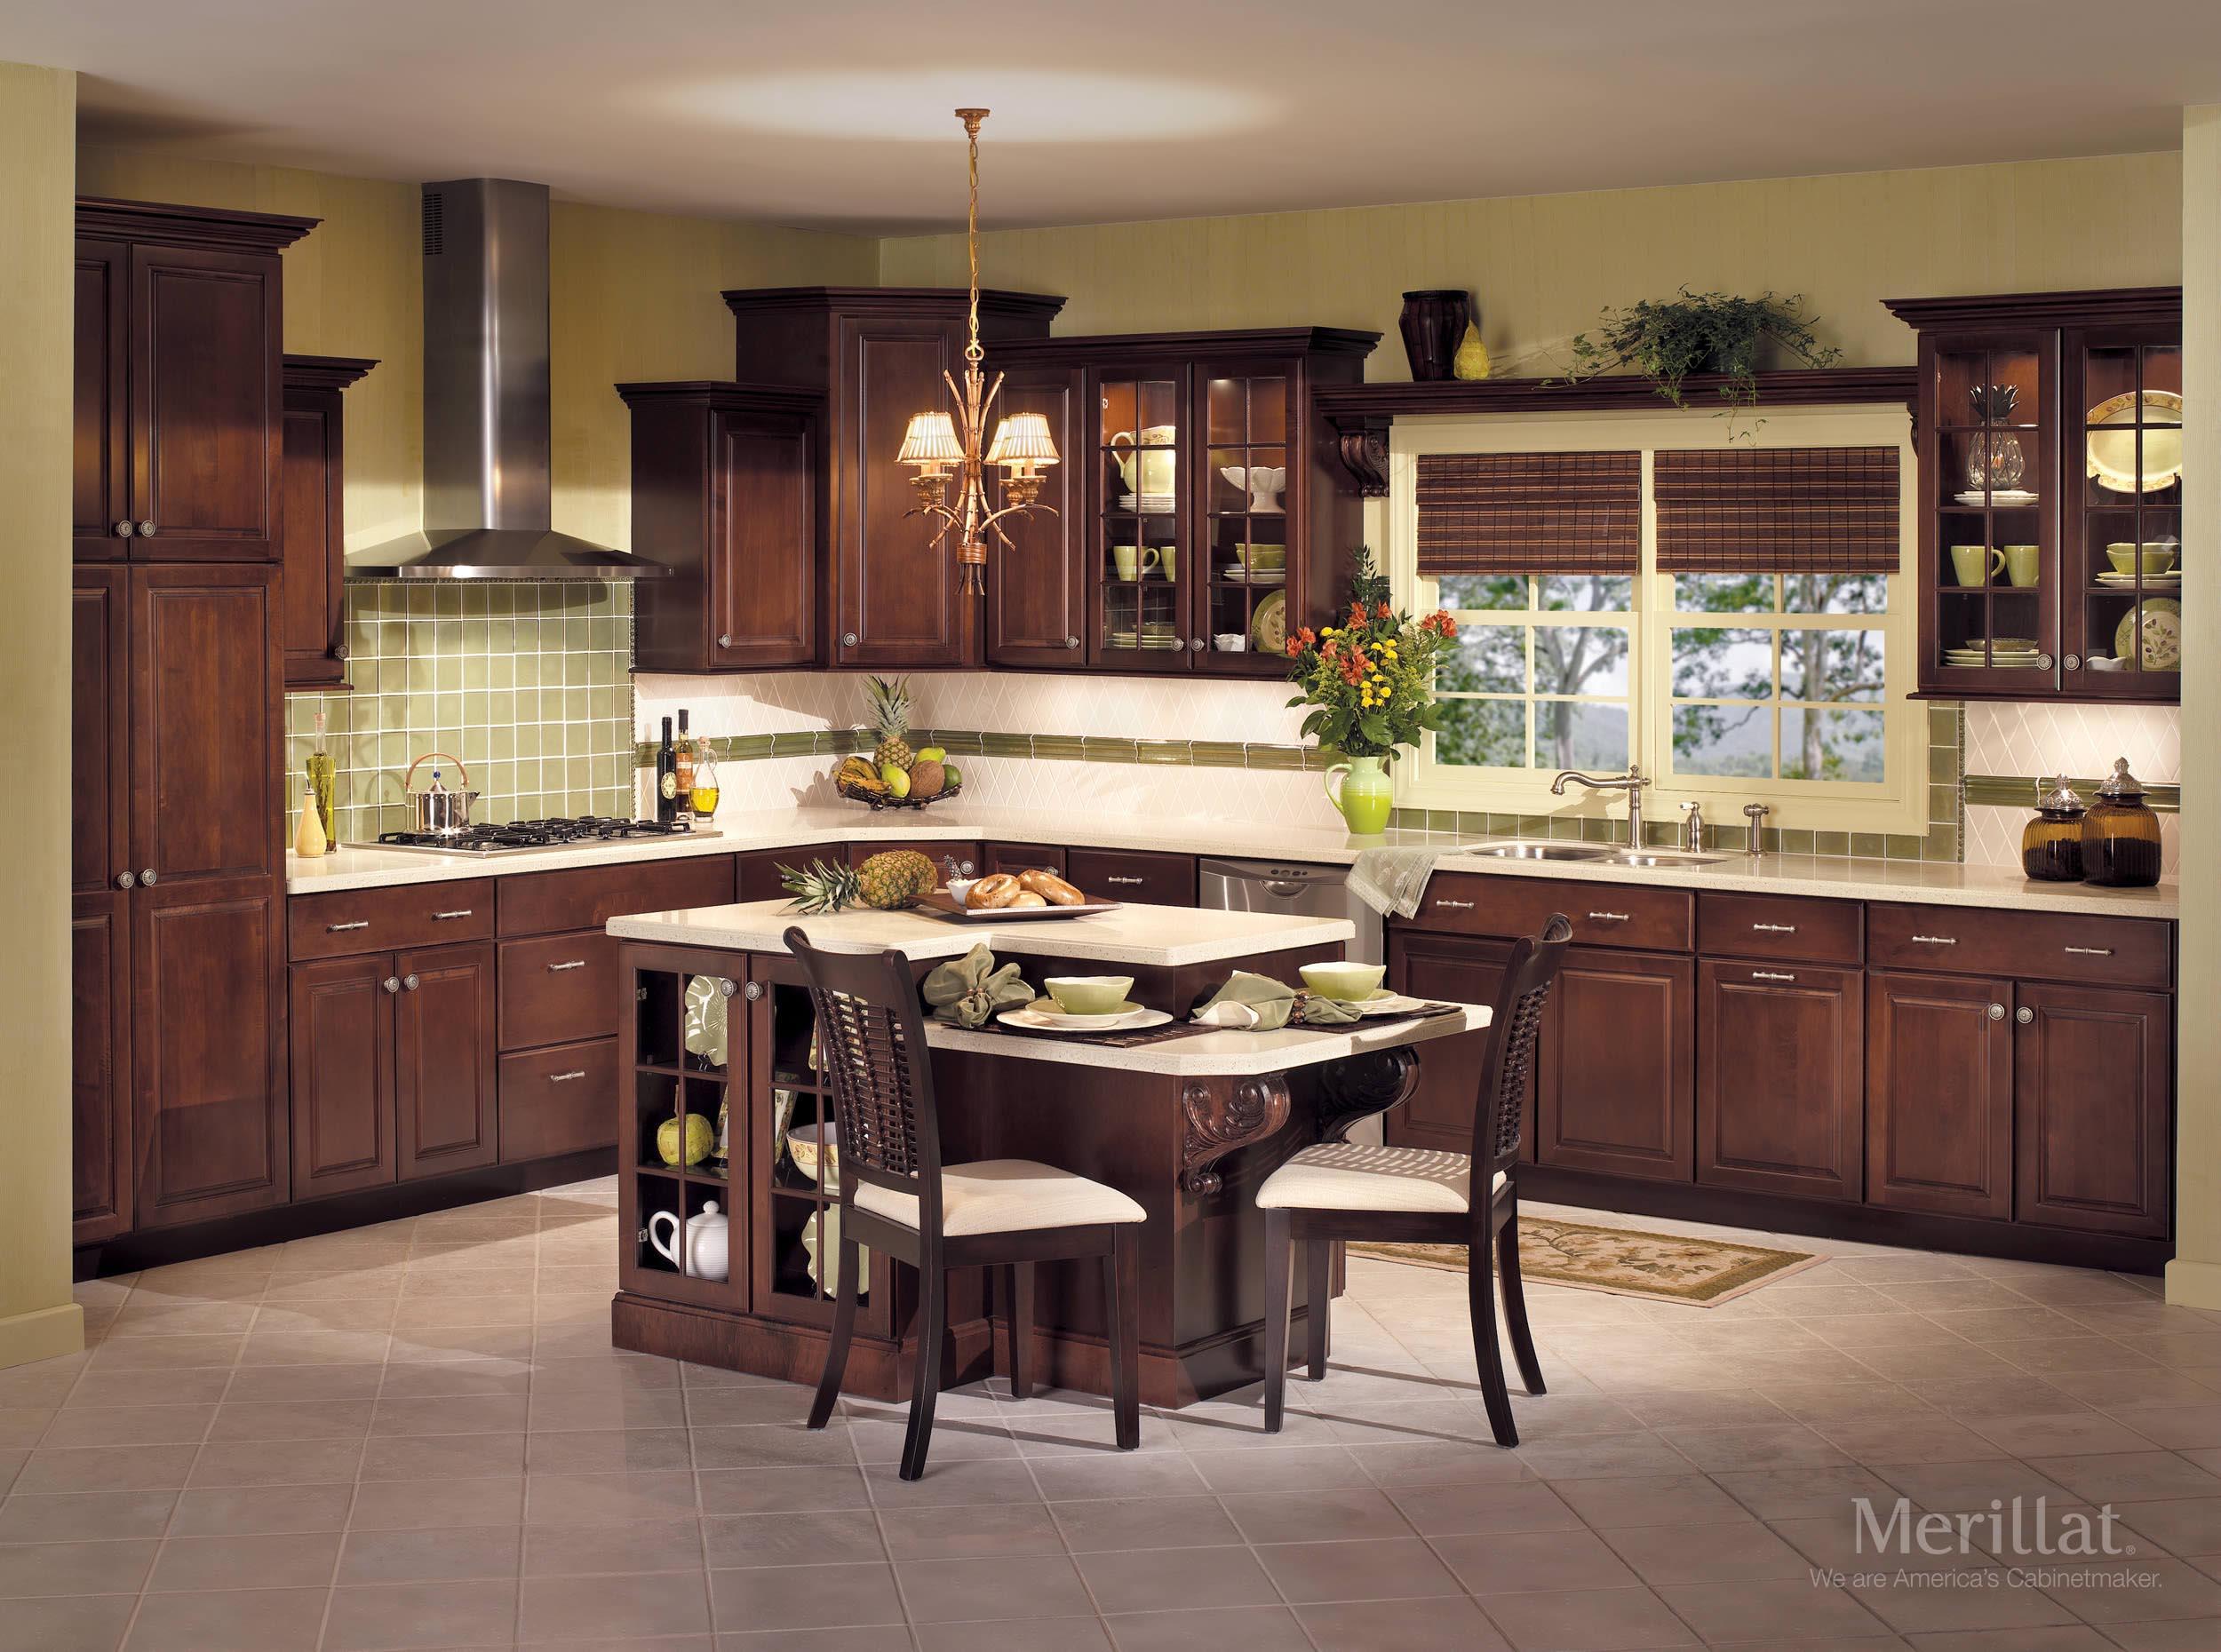 Kitchen Bath Cabinets Craftwood Products For Builders And Designers In Chicago